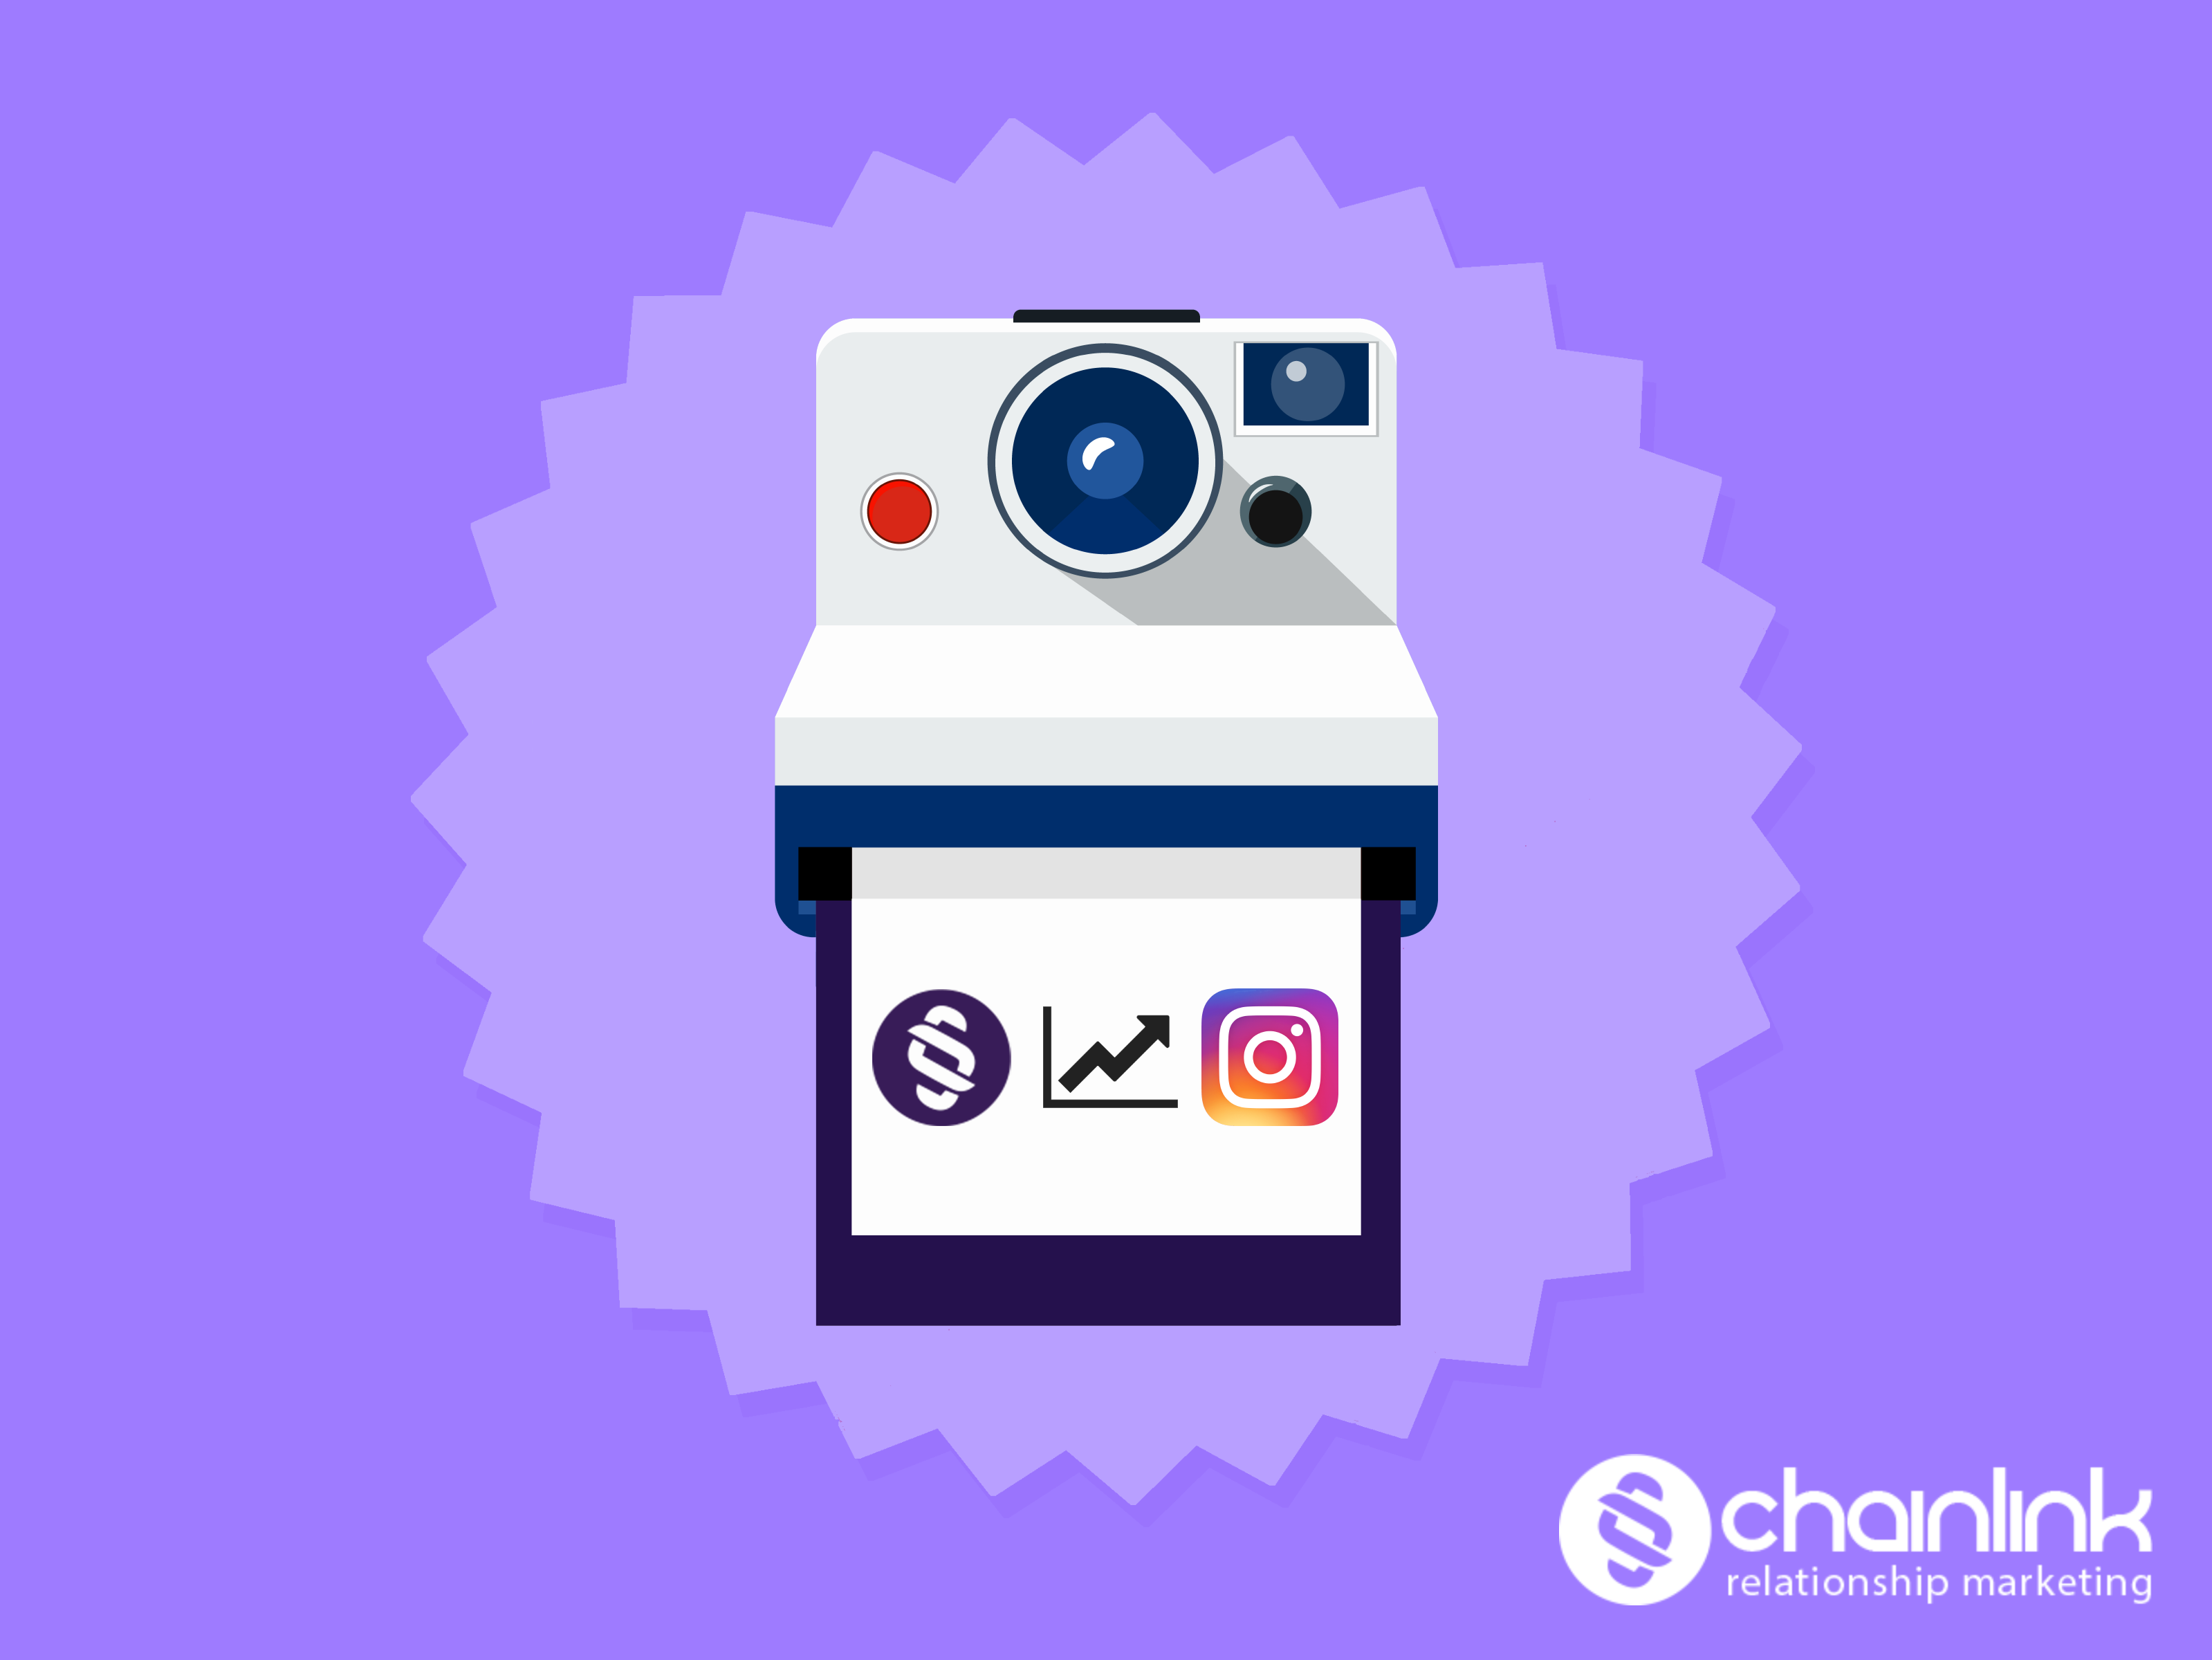 instagram ecommerce - Chainlink Relationship Marketing